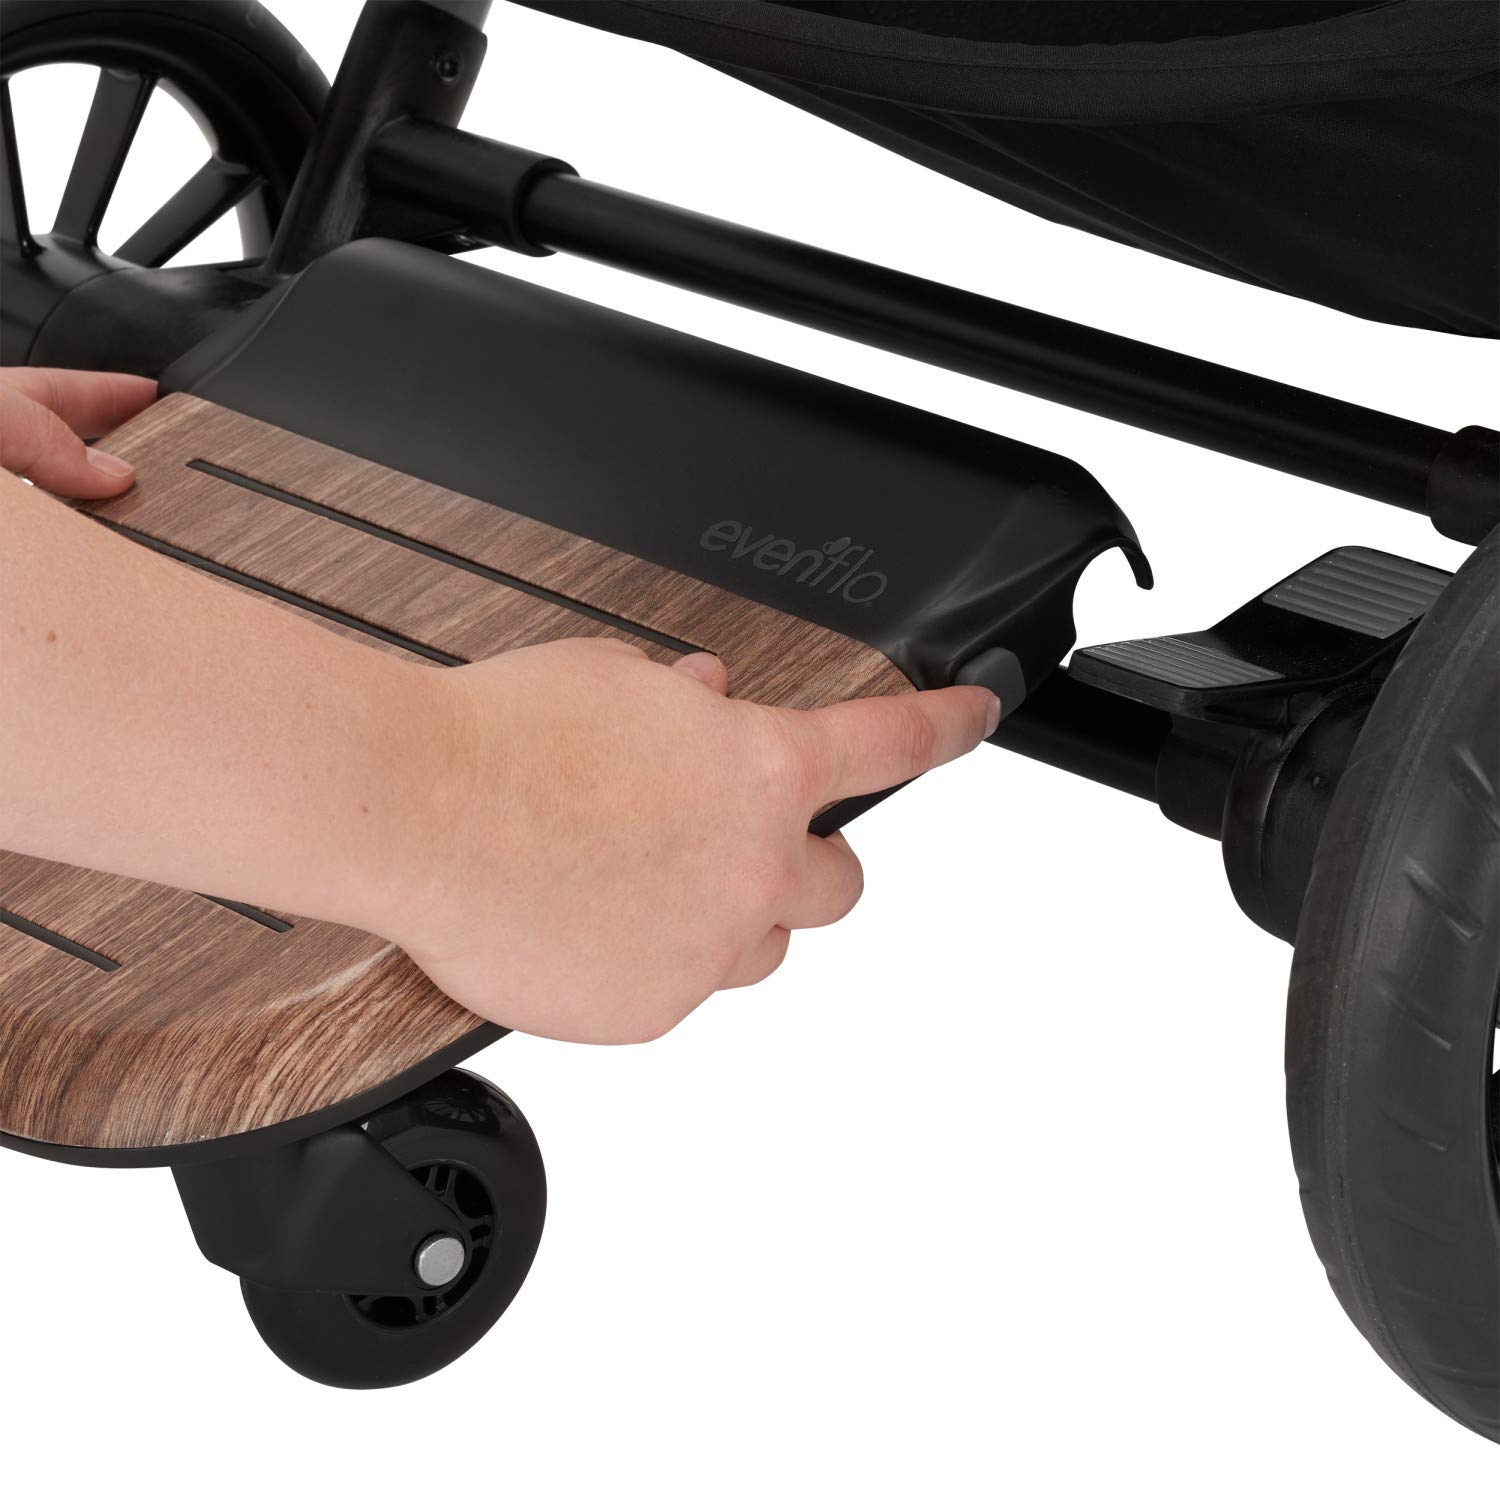 Amazon.com: Evenflo Pivot Xpand - Tabla para carrito de bebé ...